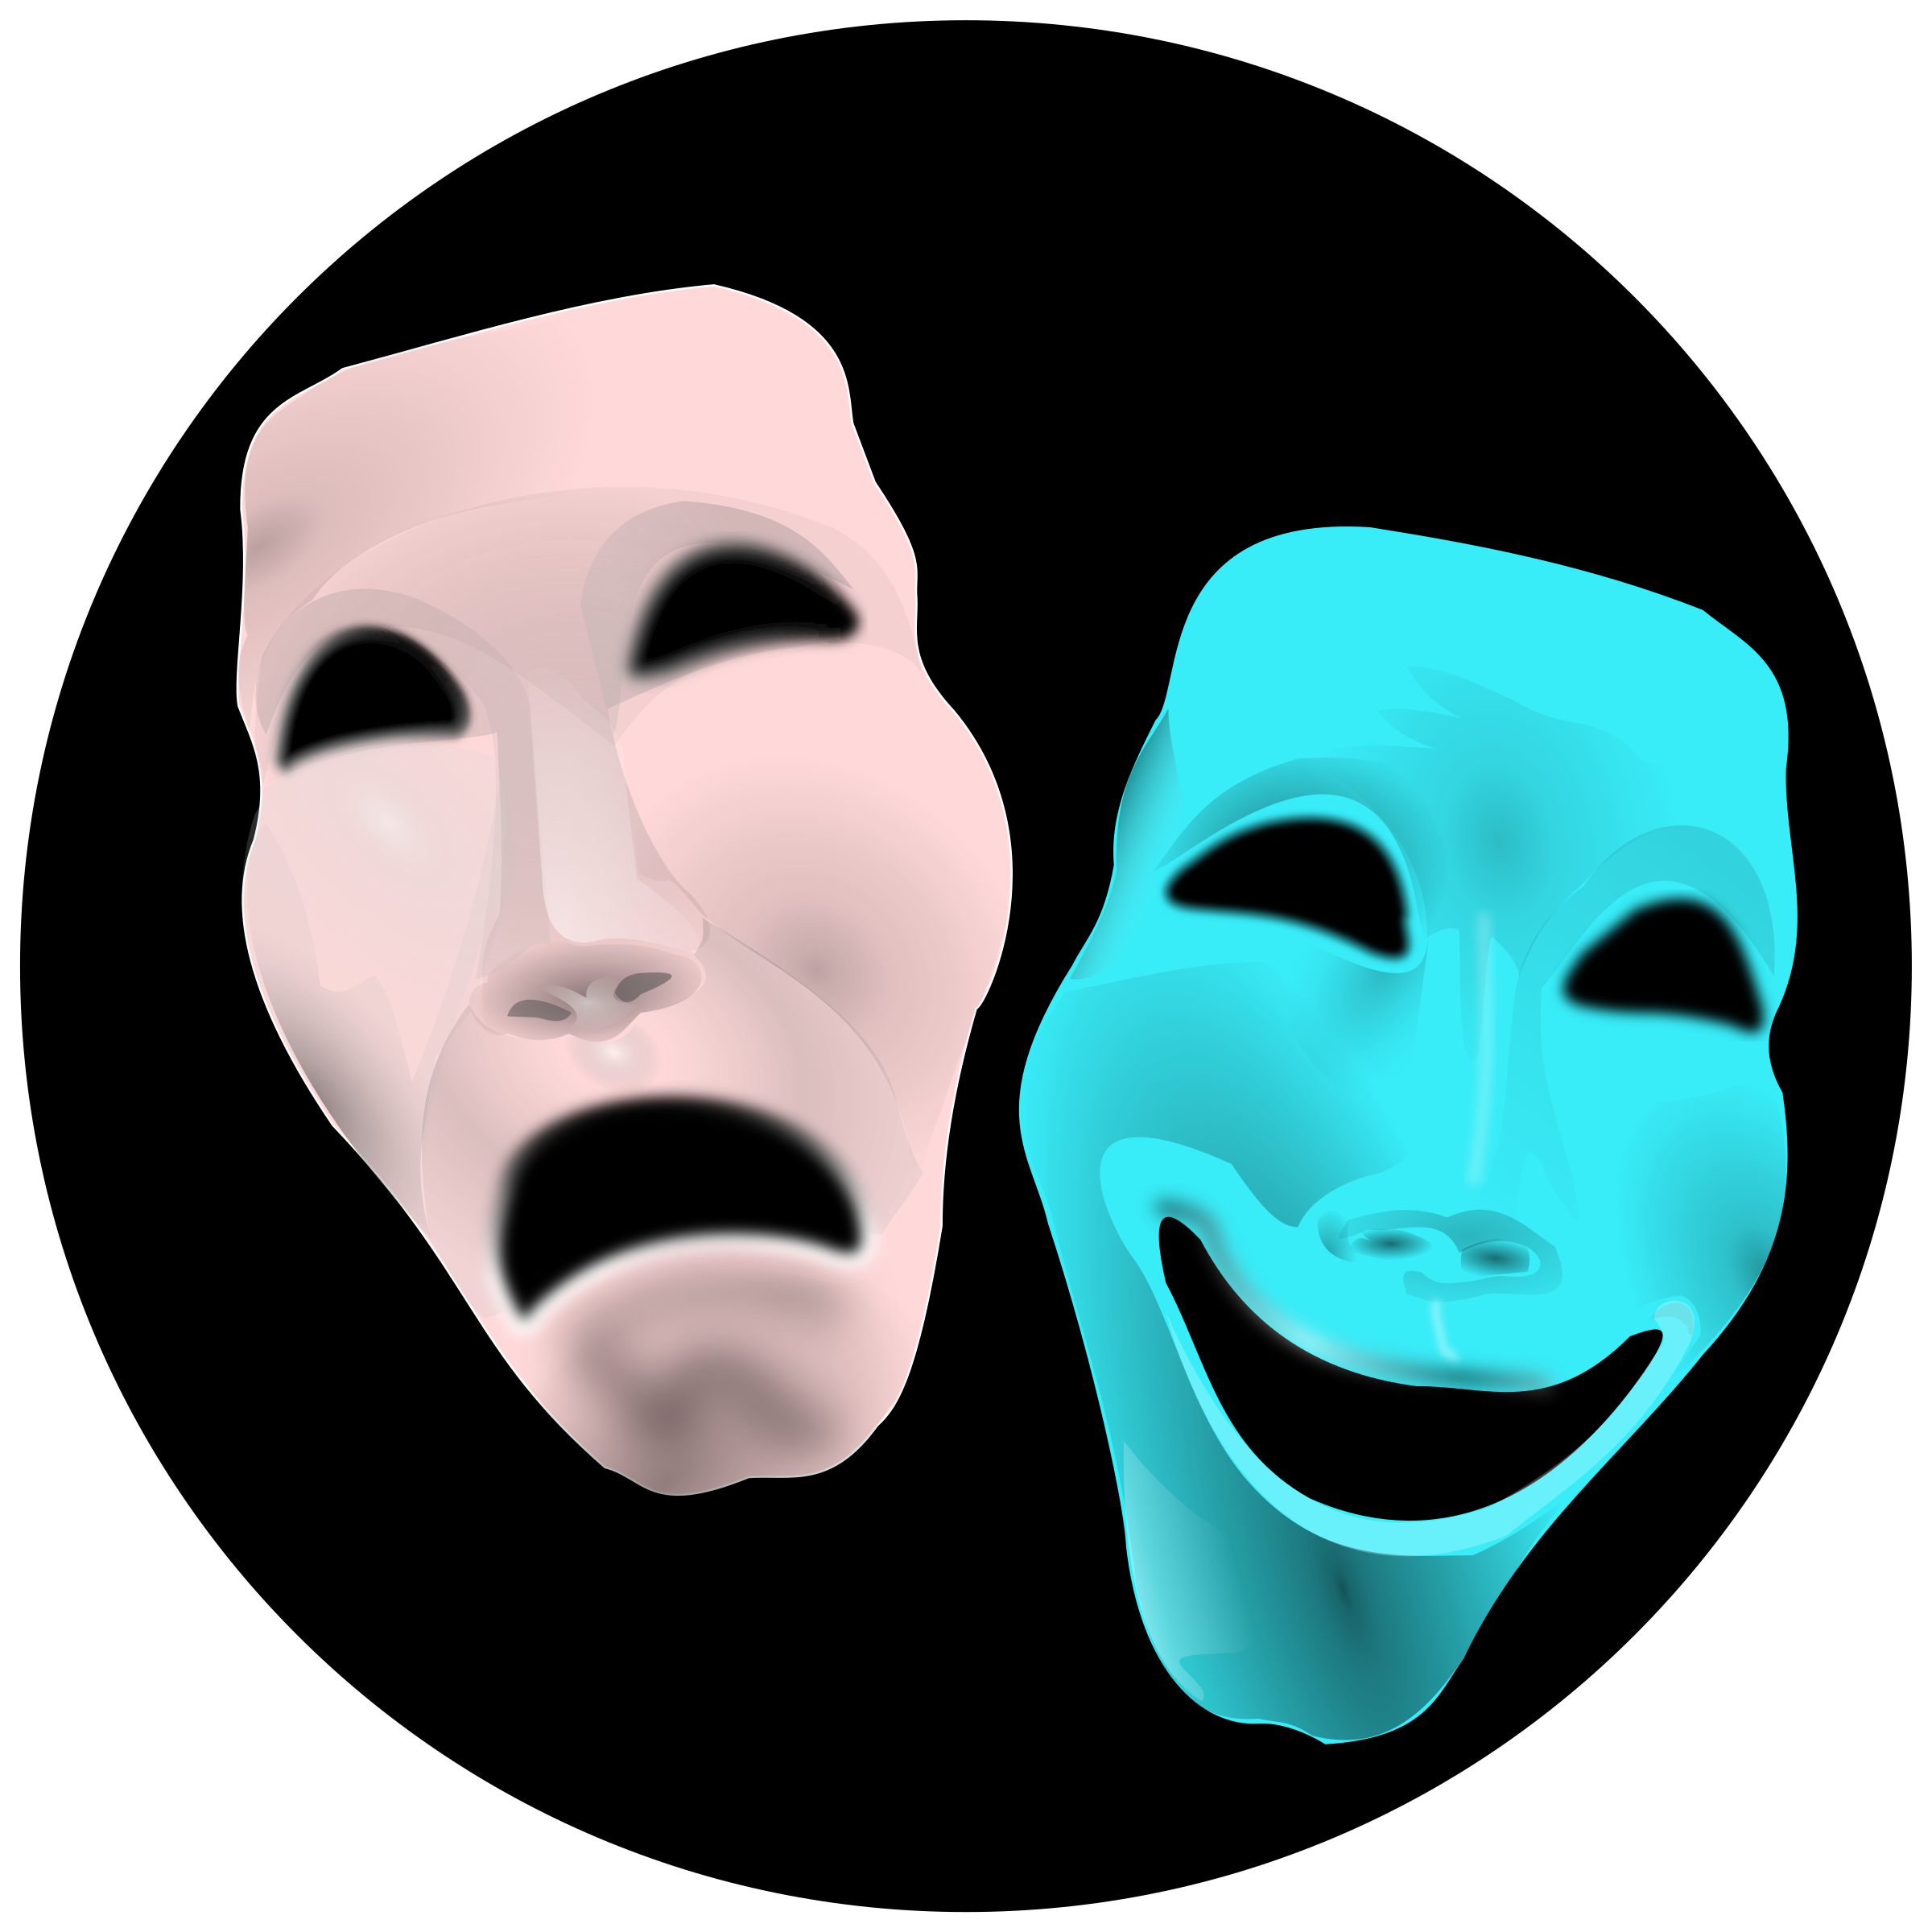 Faces clipart theater. Theatre big image png